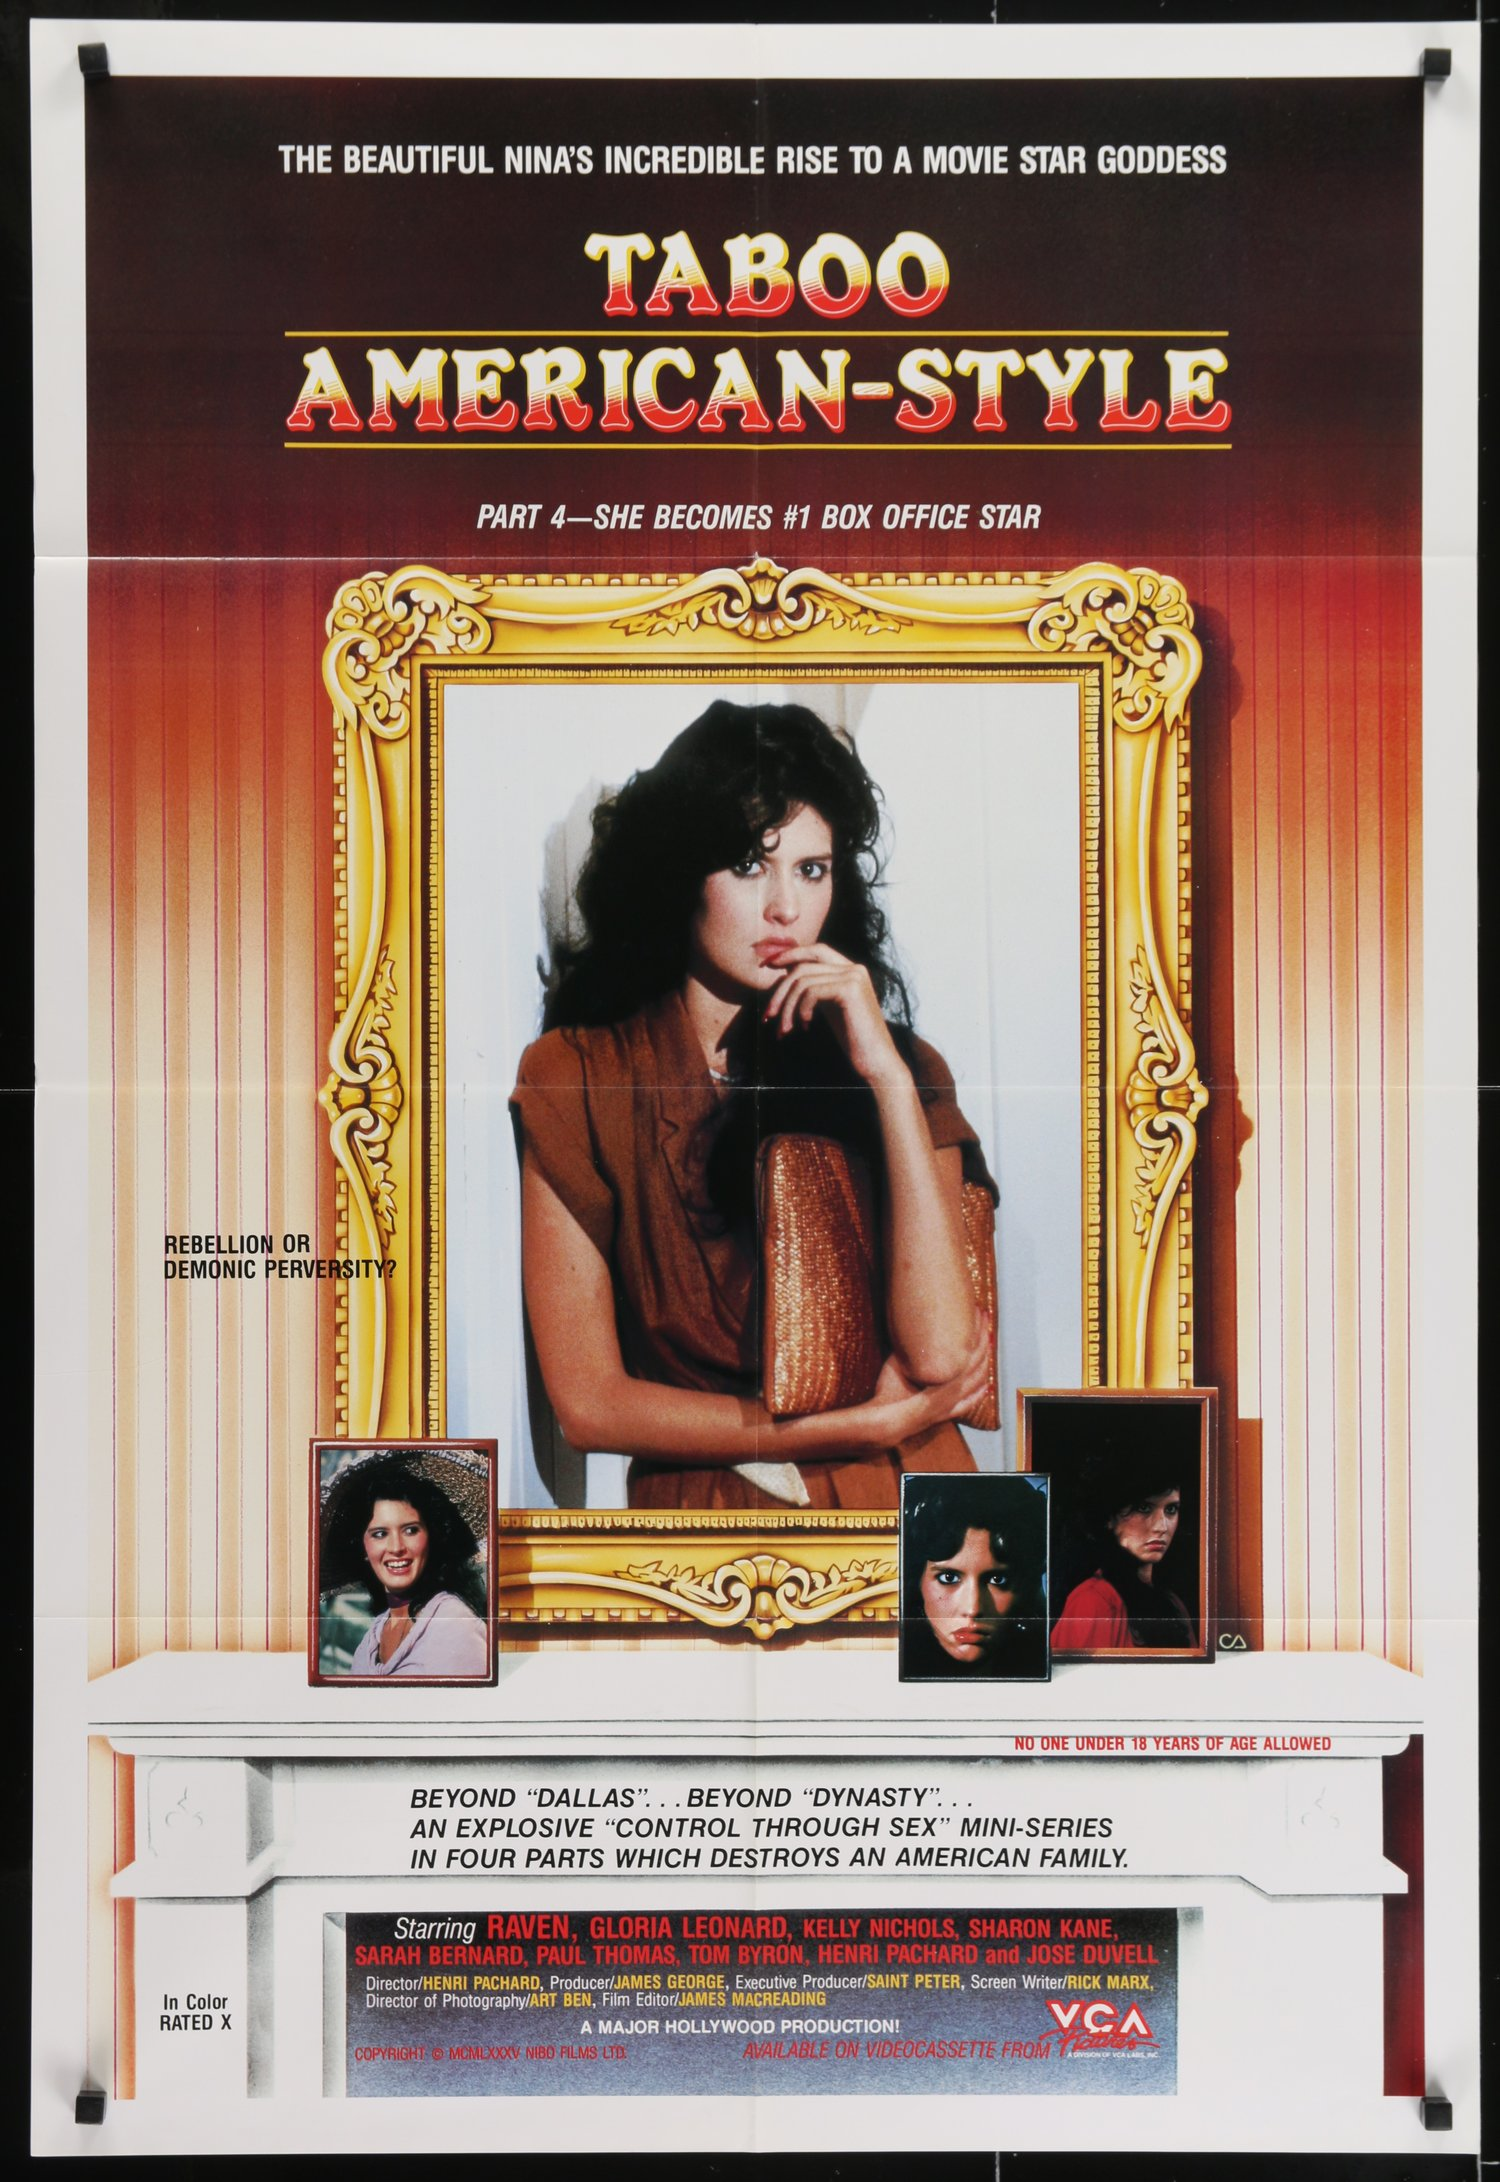 American Taboo Movie taboo american-style part 4: she becomes #1 box office star — westgate  gallery